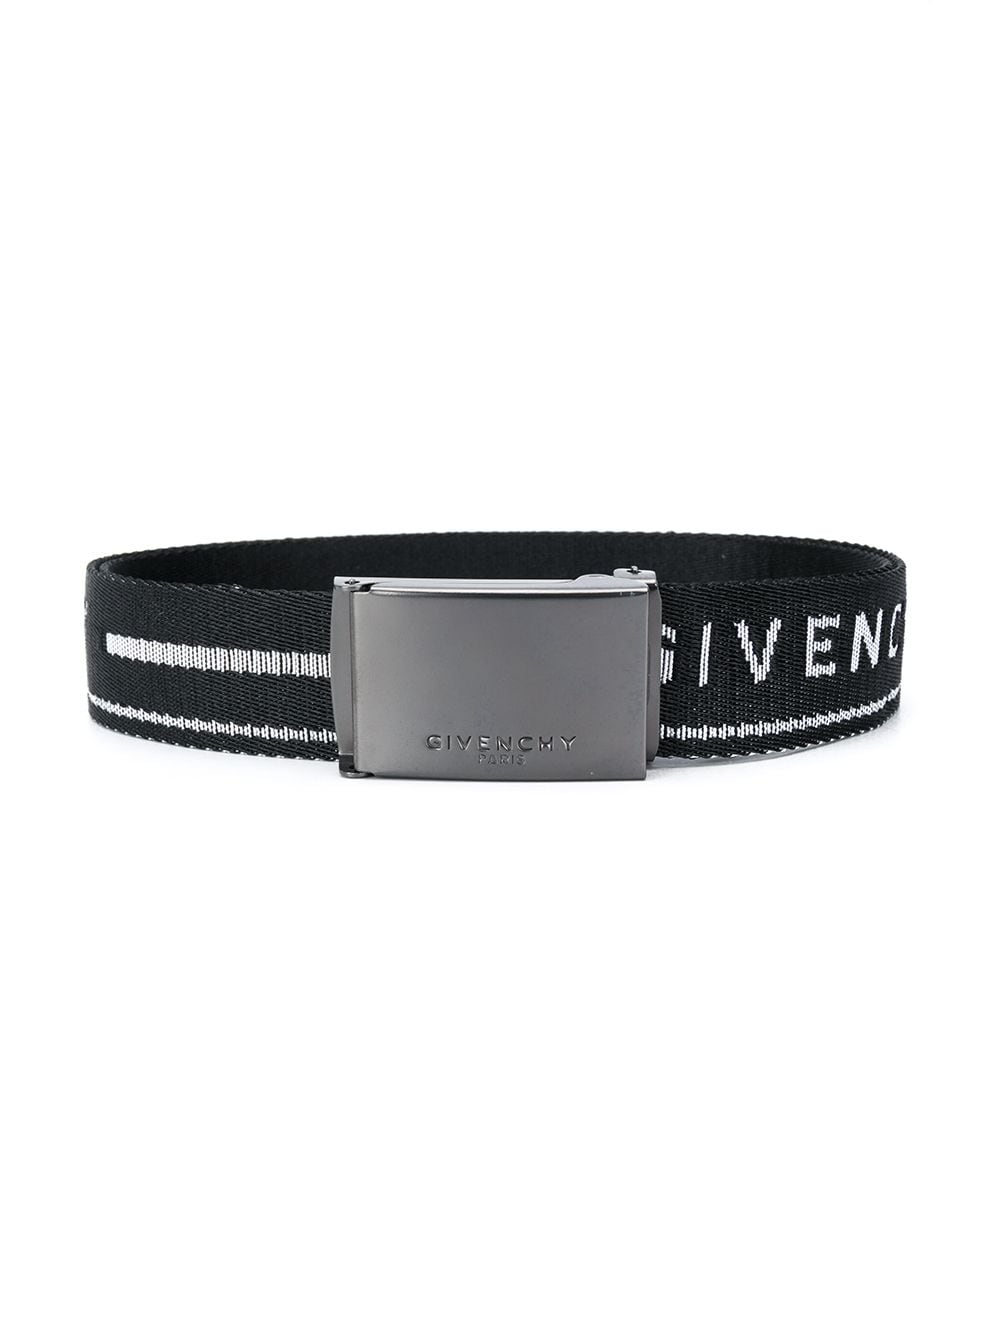 GIVENCHY KIDS Logo Stripe Belt Black - Maison De Fashion